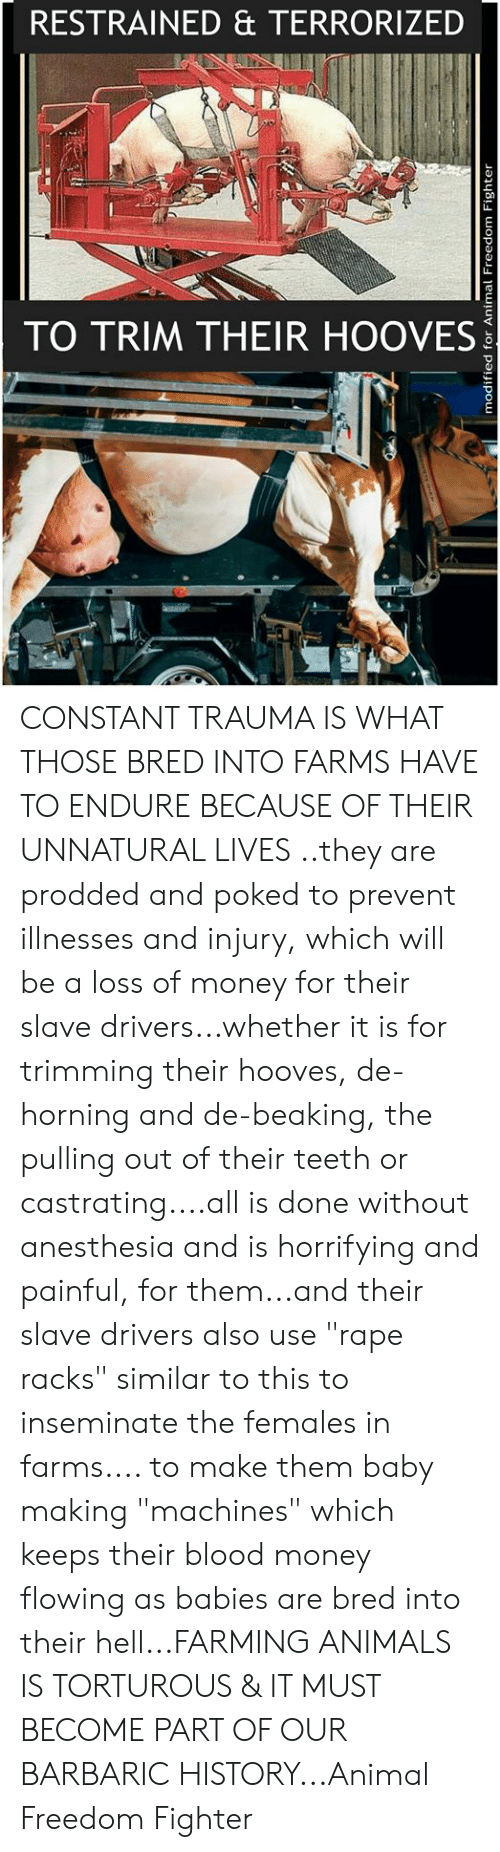 """Animals, Memes, and Money: RESTRAINED & TERRORIZED  c0  TO TRIM THEIR HOOVES CONSTANT TRAUMA IS WHAT THOSE BRED INTO FARMS HAVE TO ENDURE BECAUSE OF THEIR UNNATURAL LIVES ..they are prodded and poked to prevent illnesses and injury, which will be a loss of money for their slave drivers...whether it is for trimming their hooves, de-horning and de-beaking, the pulling out of their teeth or castrating....all is done without anesthesia and is horrifying and painful, for them...and their slave drivers also use """"rape racks"""" similar to this to inseminate the females in farms.... to make them baby making """"machines"""" which keeps their blood money flowing as babies are bred into their hell...FARMING ANIMALS IS TORTUROUS & IT MUST BECOME PART OF OUR BARBARIC HISTORY...Animal Freedom Fighter"""